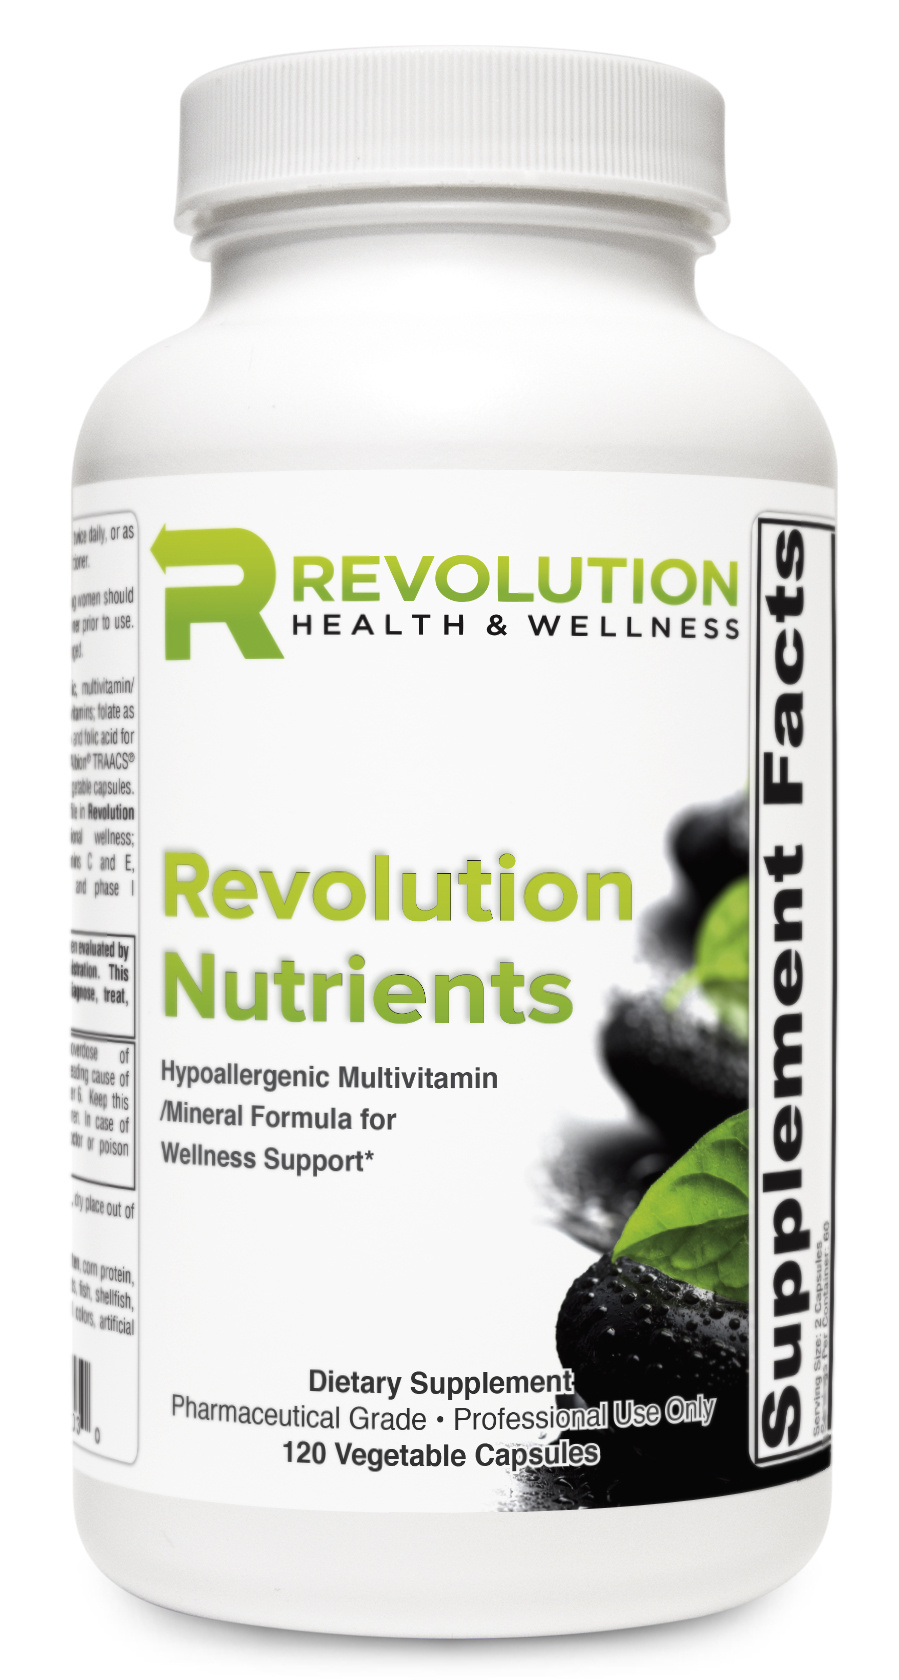 Revolution Nutrients